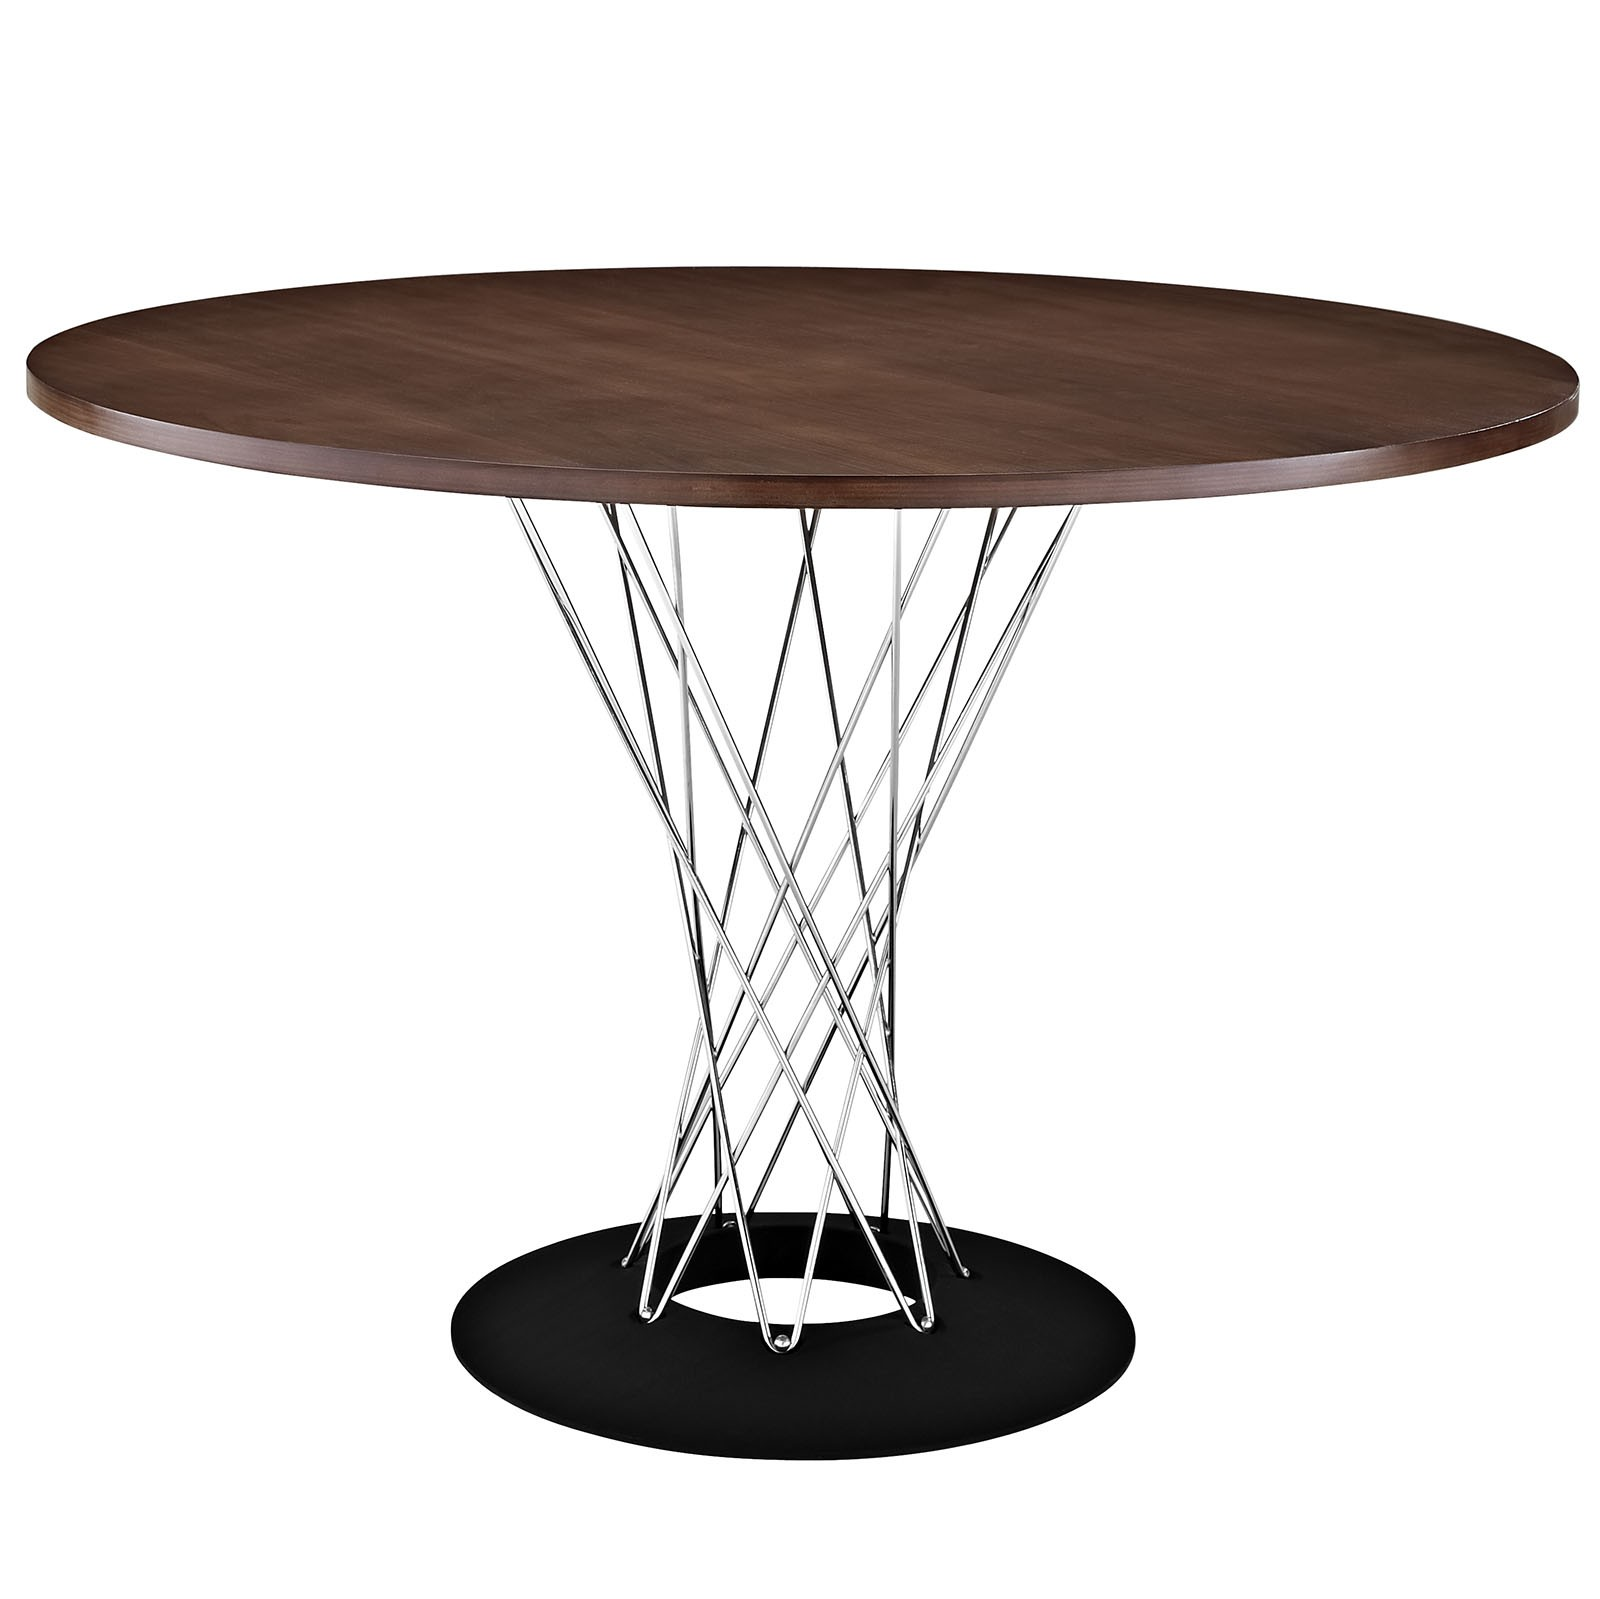 1600x1599px 7 Fabulous Guchi Cyclone Dining Table Picture in Furniture